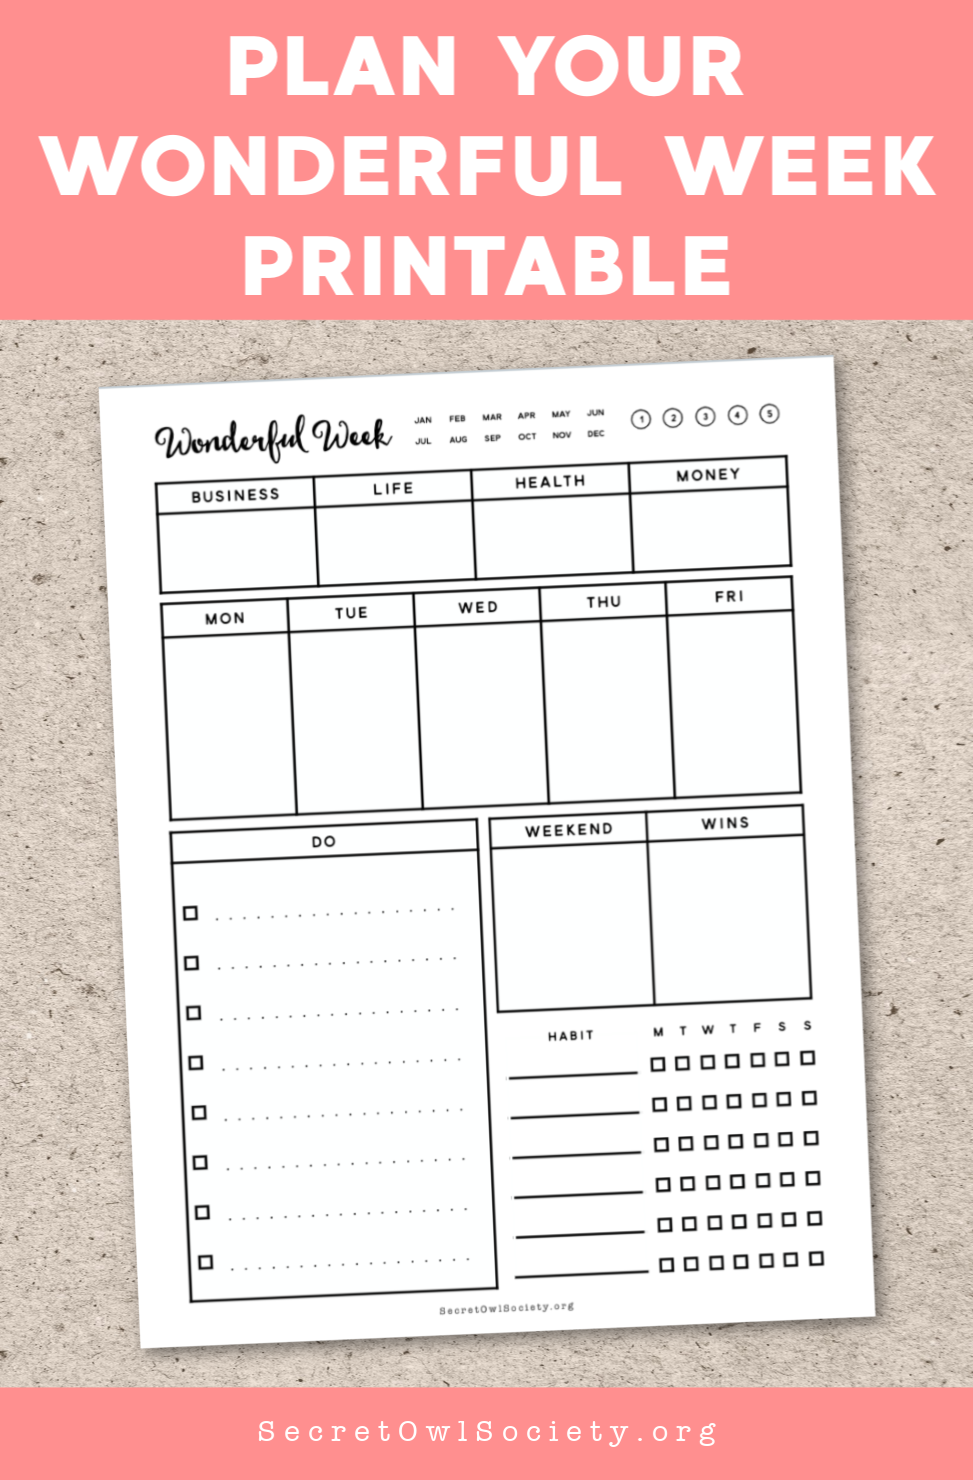 PLAN YOUR WONDERFUL WEEK PRINTABLE.png